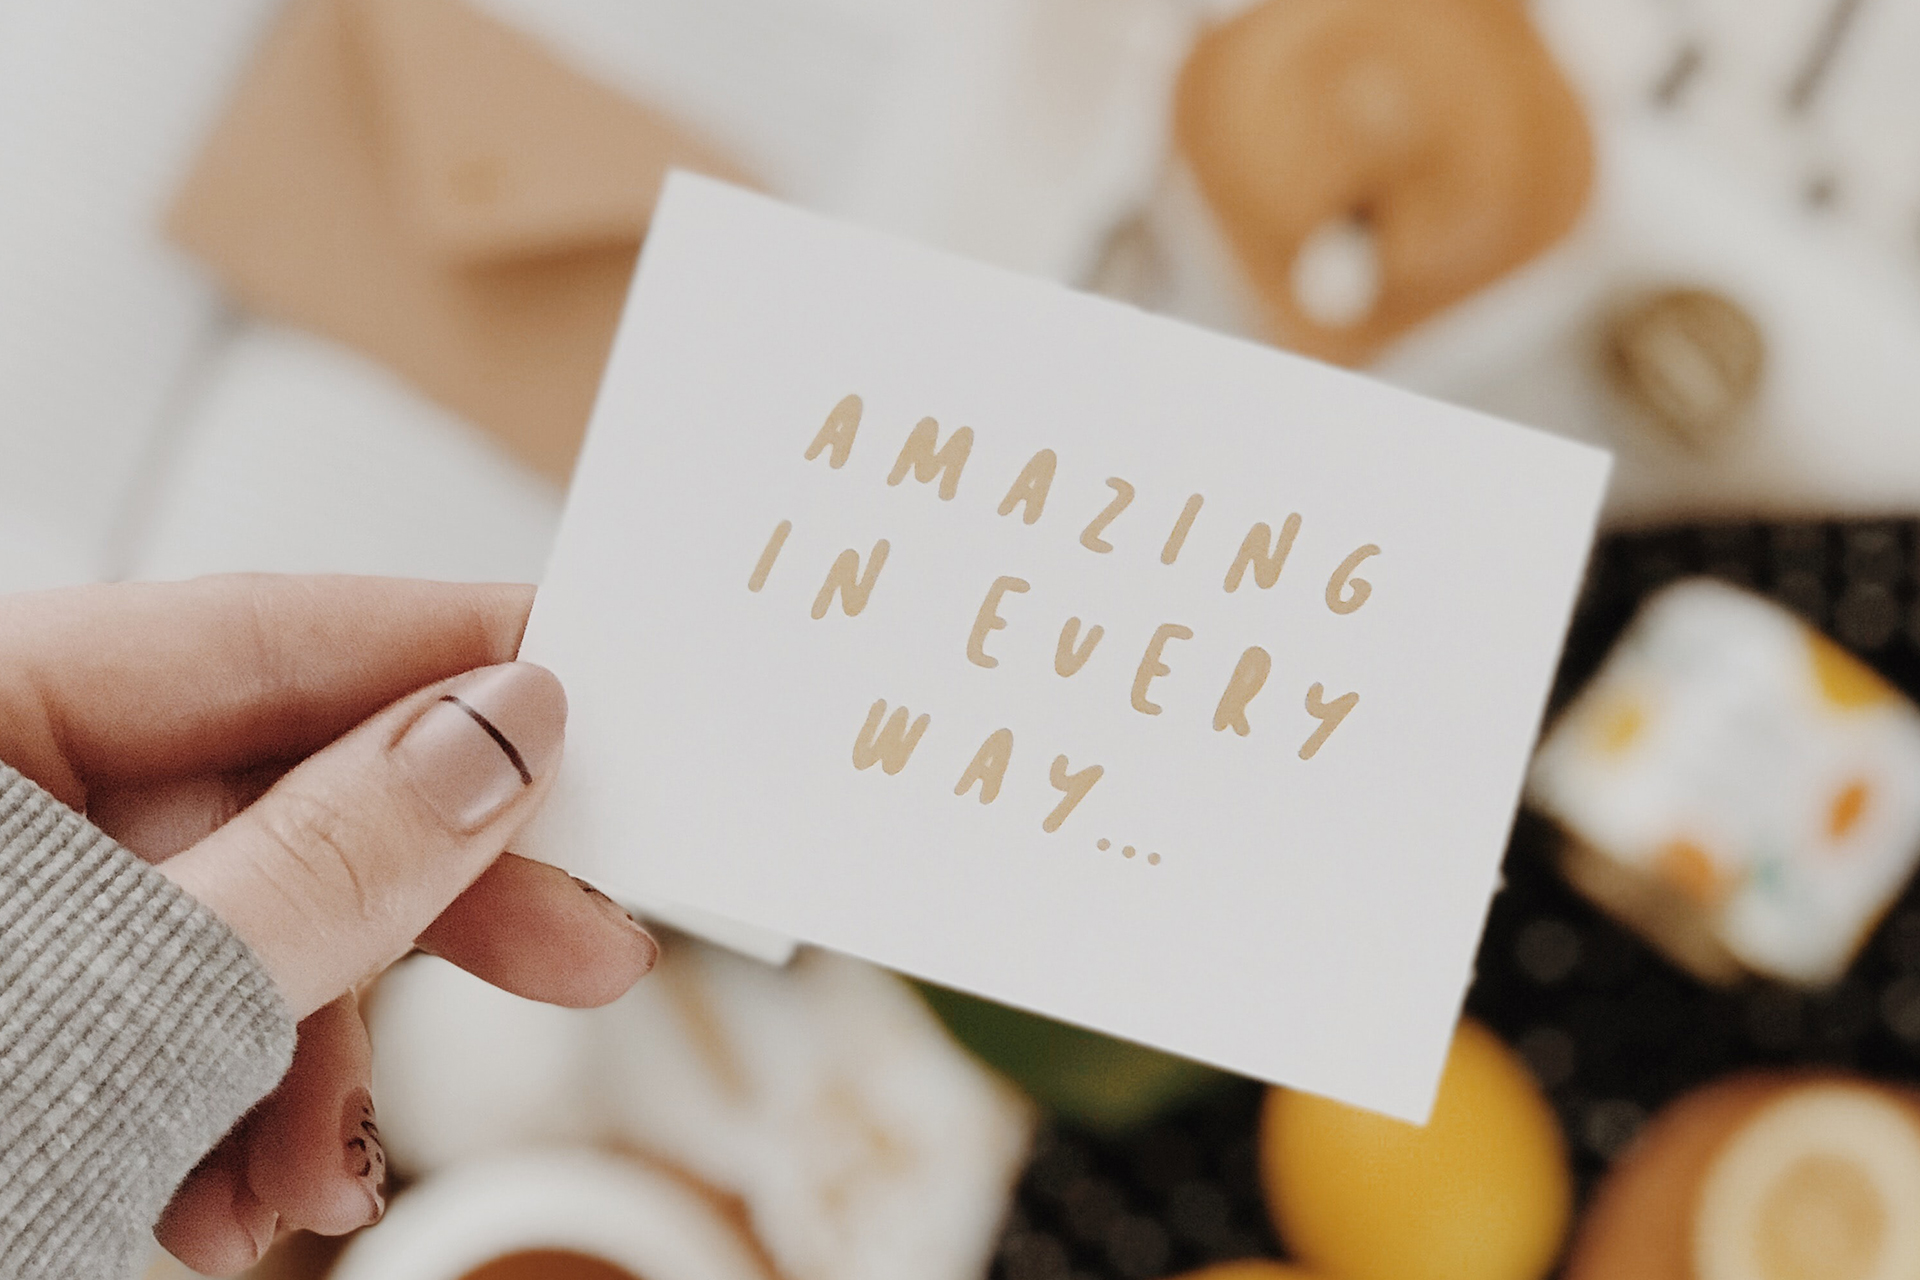 Woman holding up a card that says 'amazing in every way'